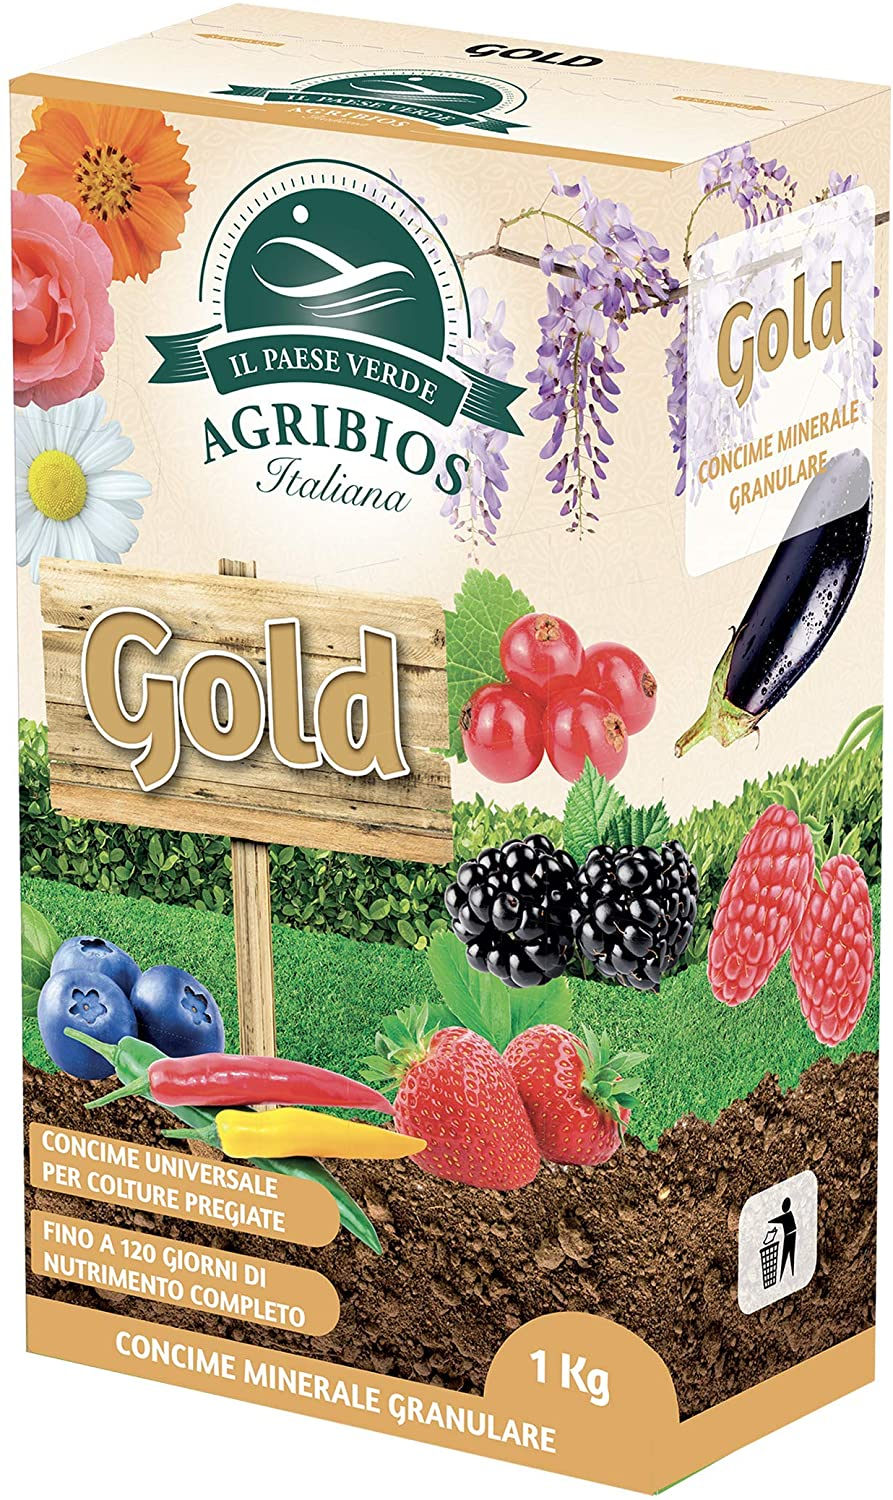 Agribios Concime Granulare Universale Gold